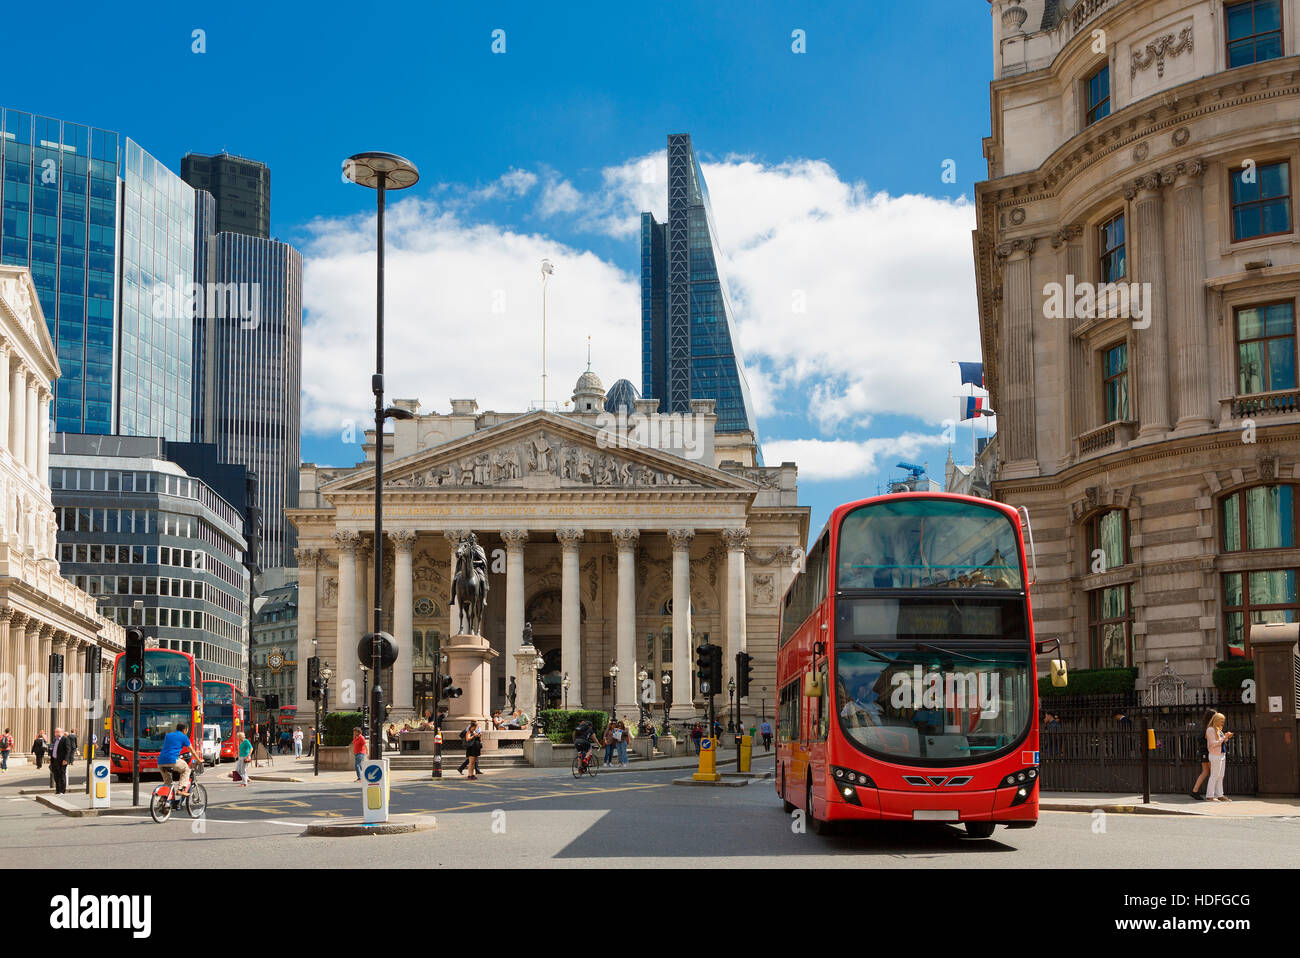 LONDON, UK - View of British financial heart, Bank of England and Royal Exchange. - Stock Image